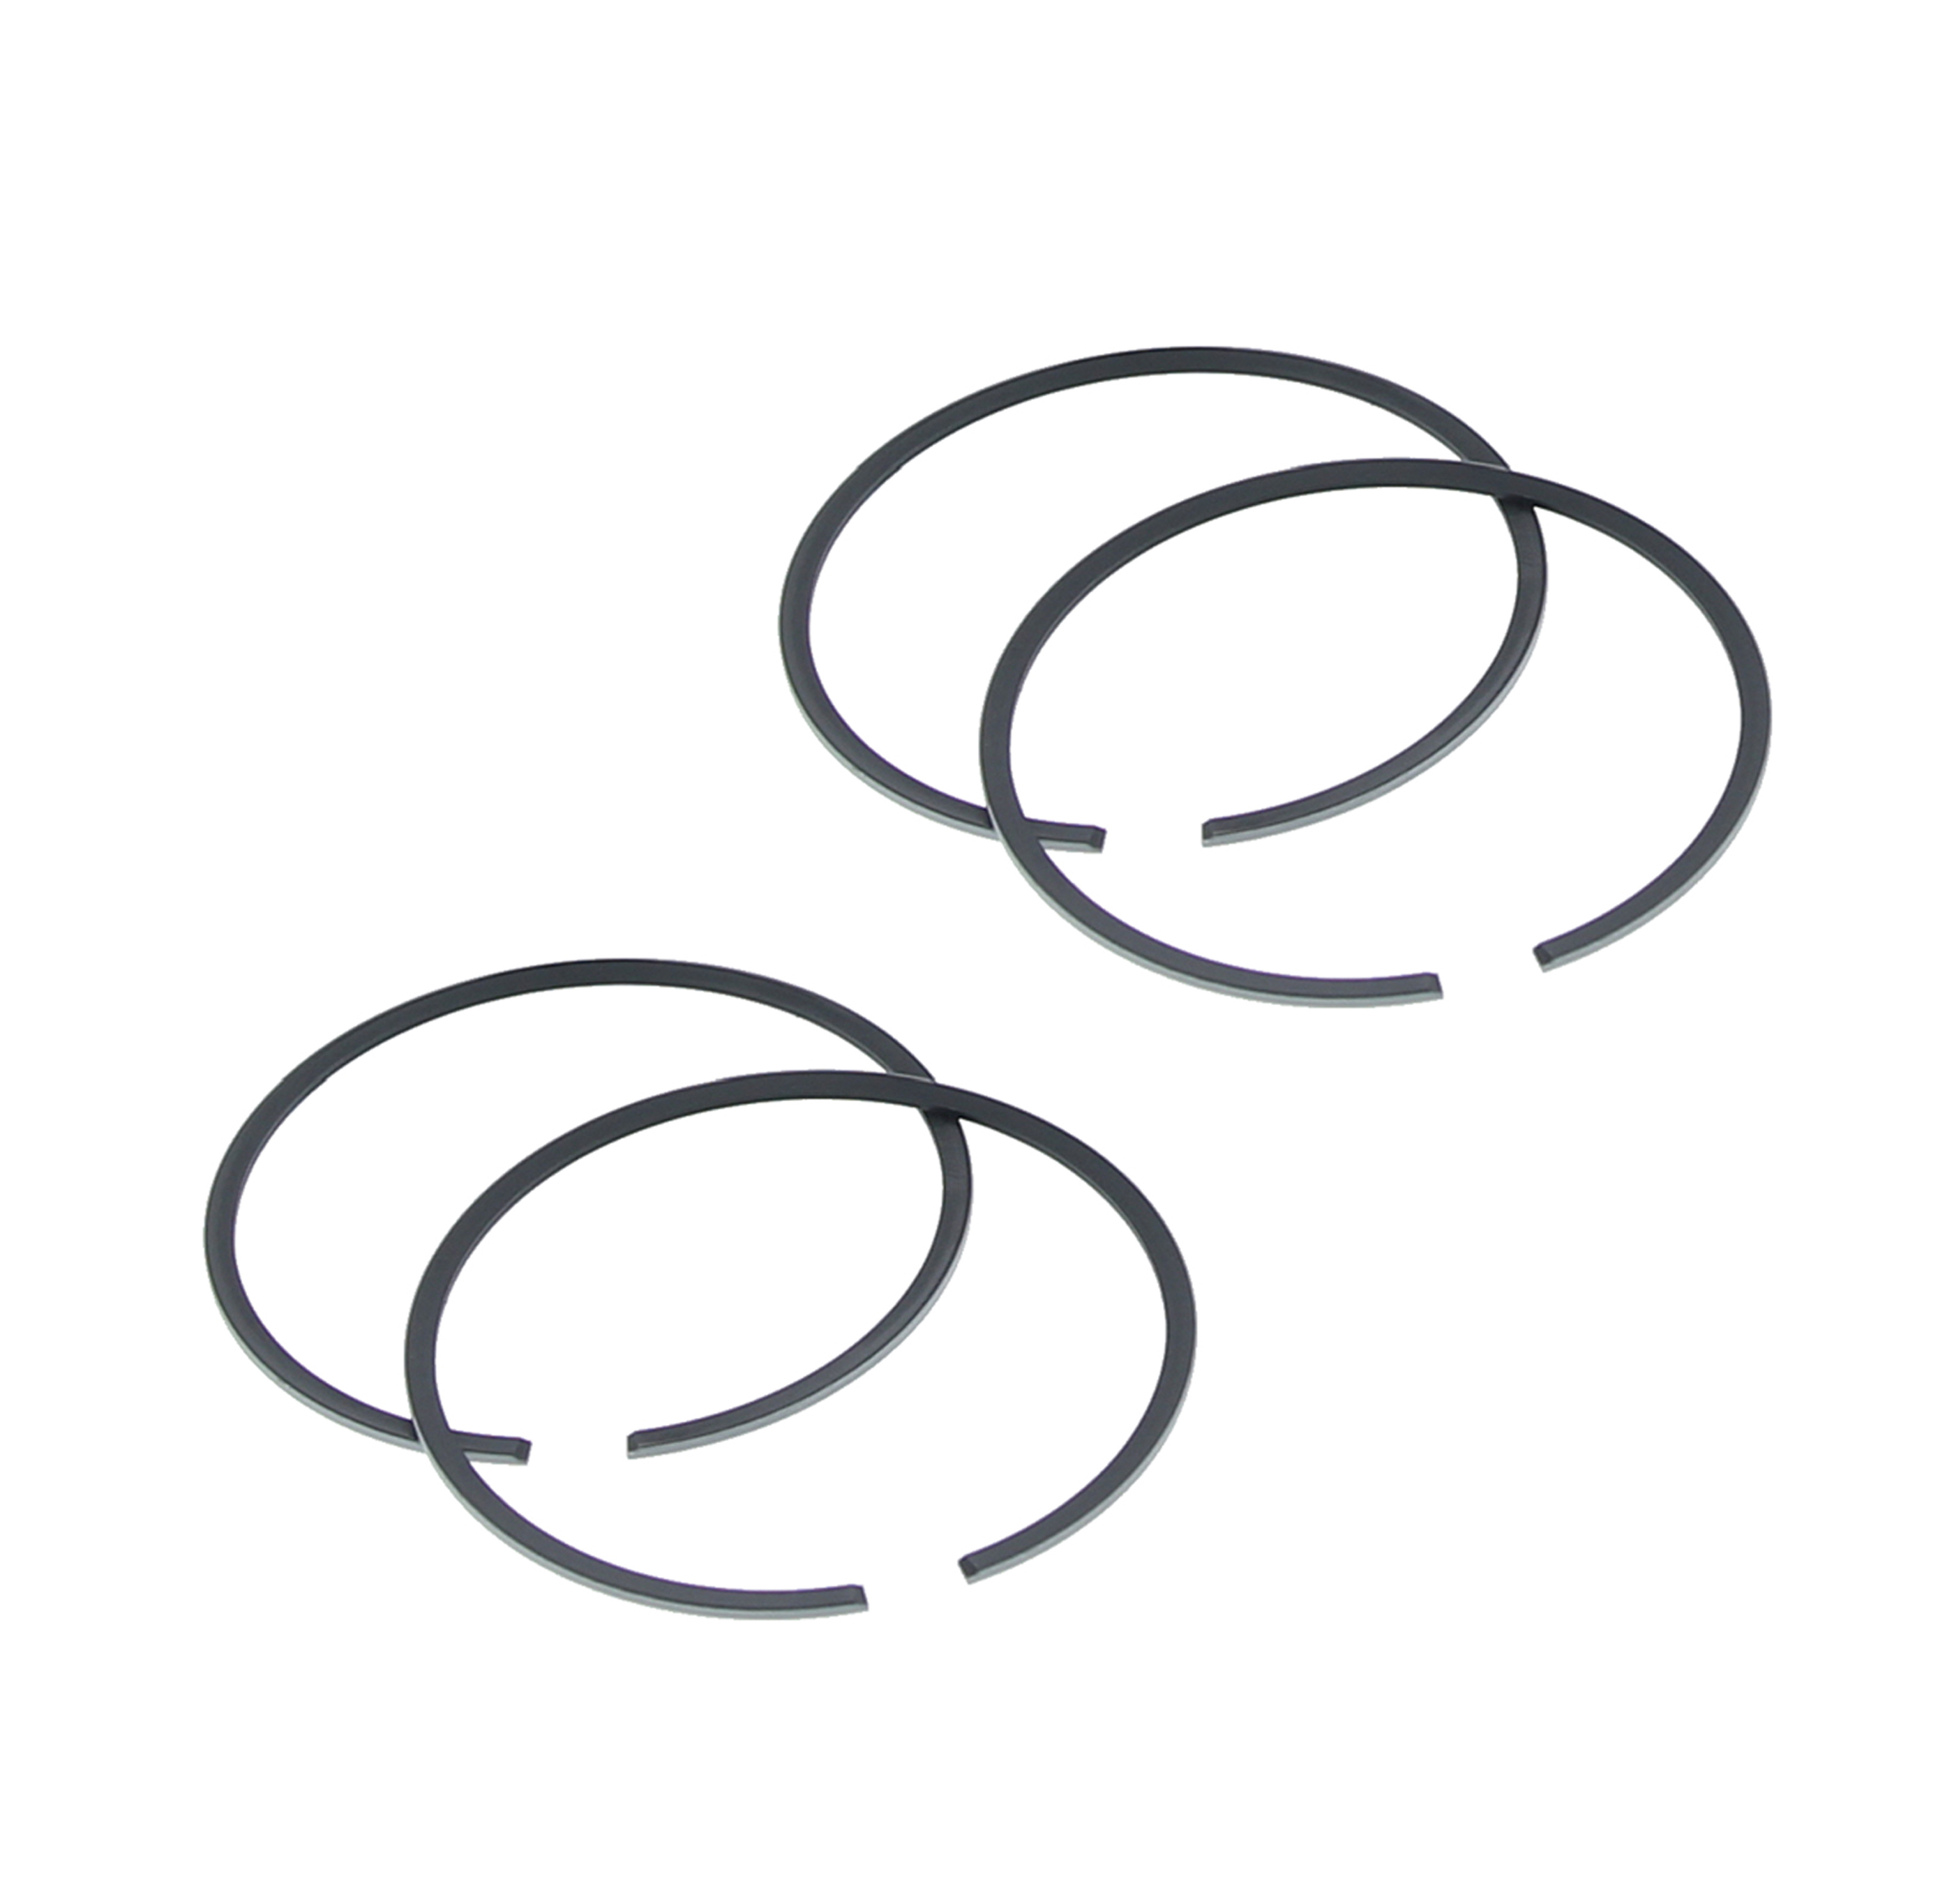 1989 1990 1993-2000 Yamaha Ovation CS340 Piston Rings x2